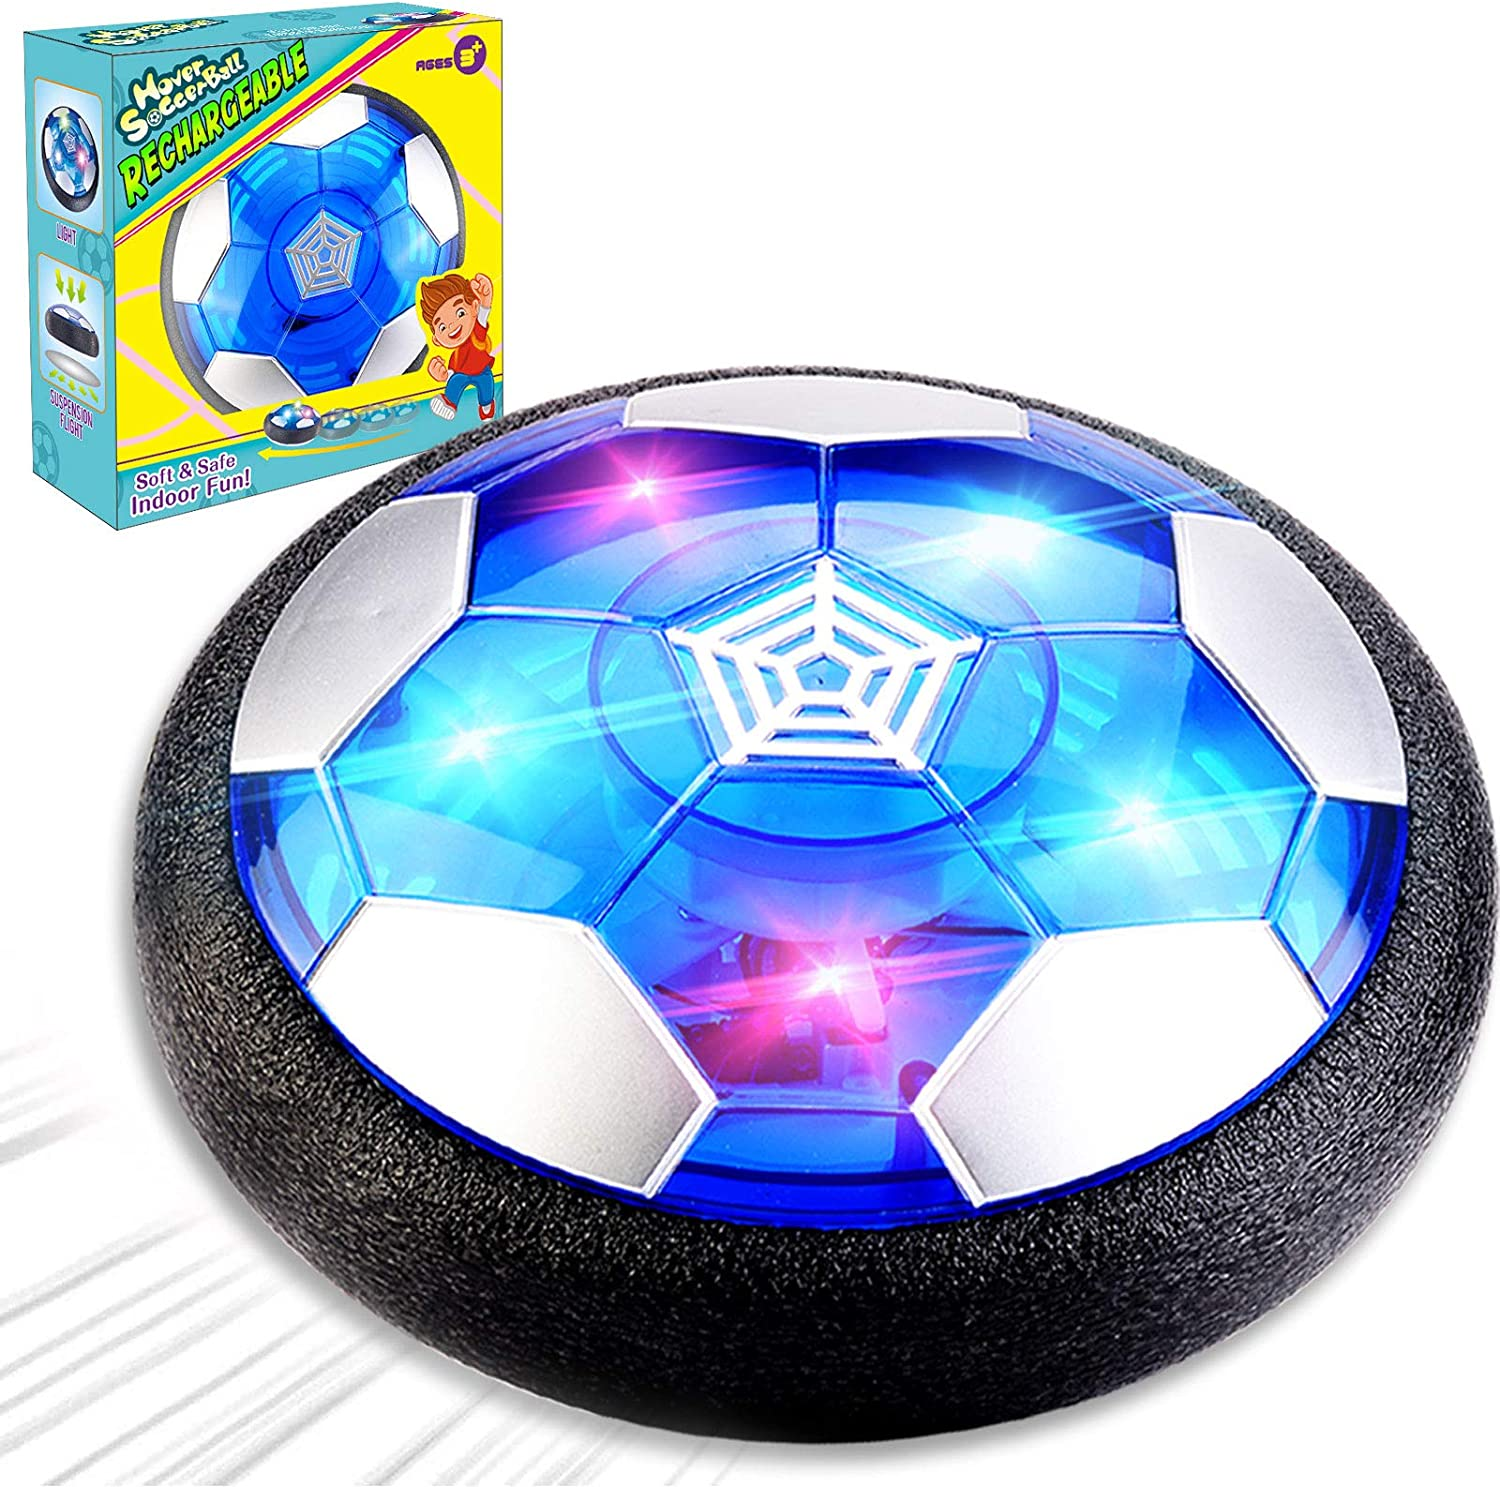 Camlinbo Kids Soccer Genuine Free Shipping Toys Rechargeable Air Fl Large discharge sale Ball Hover